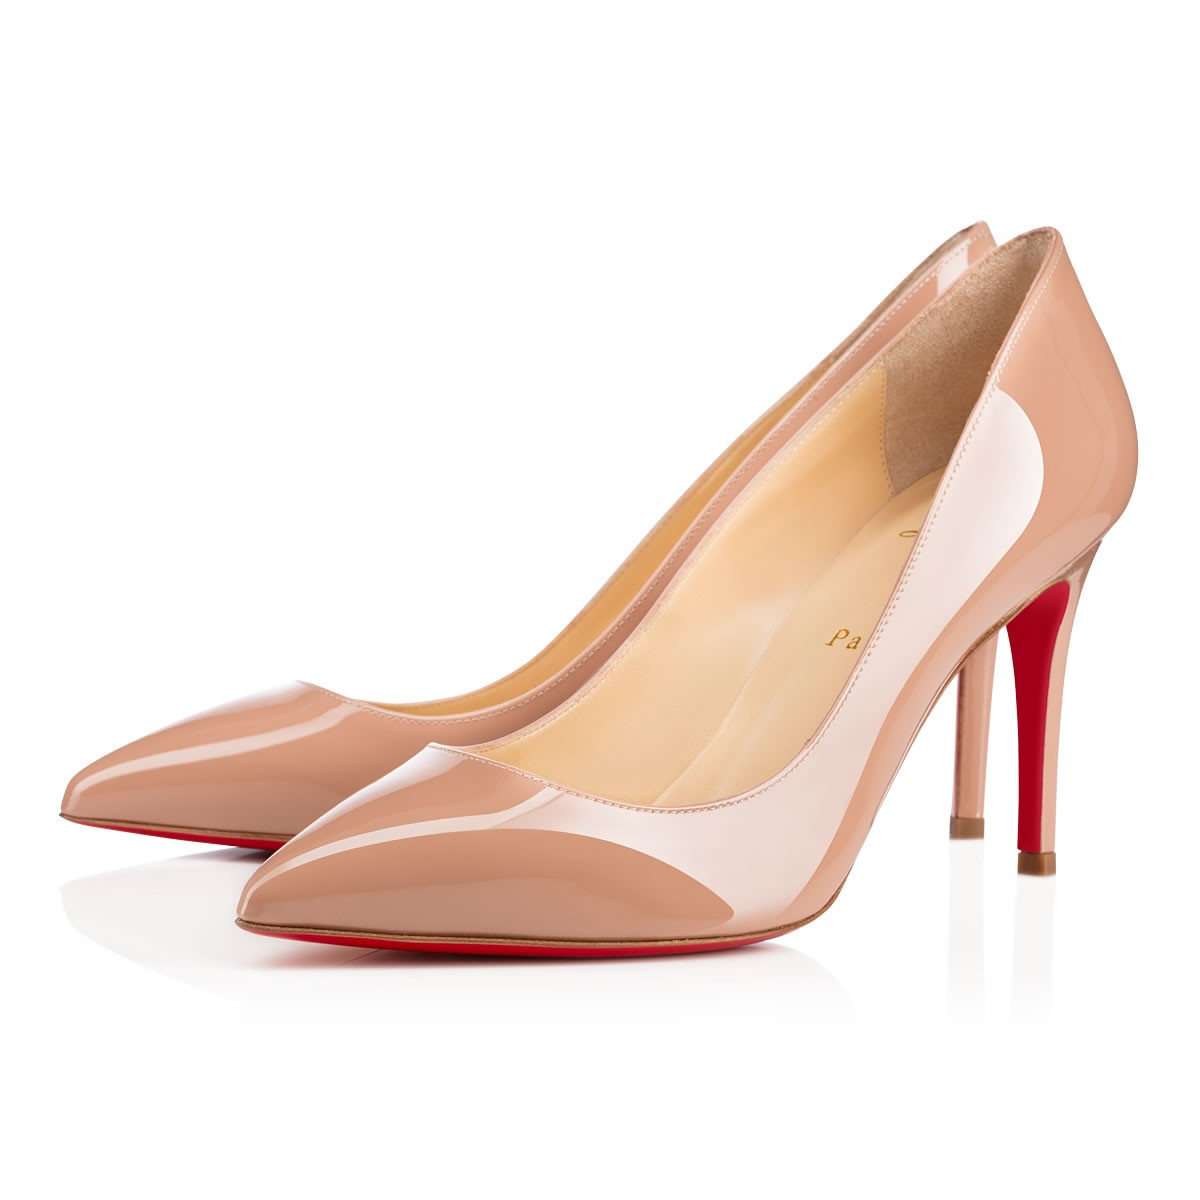 christian louboutin bridal shoes photo - 1